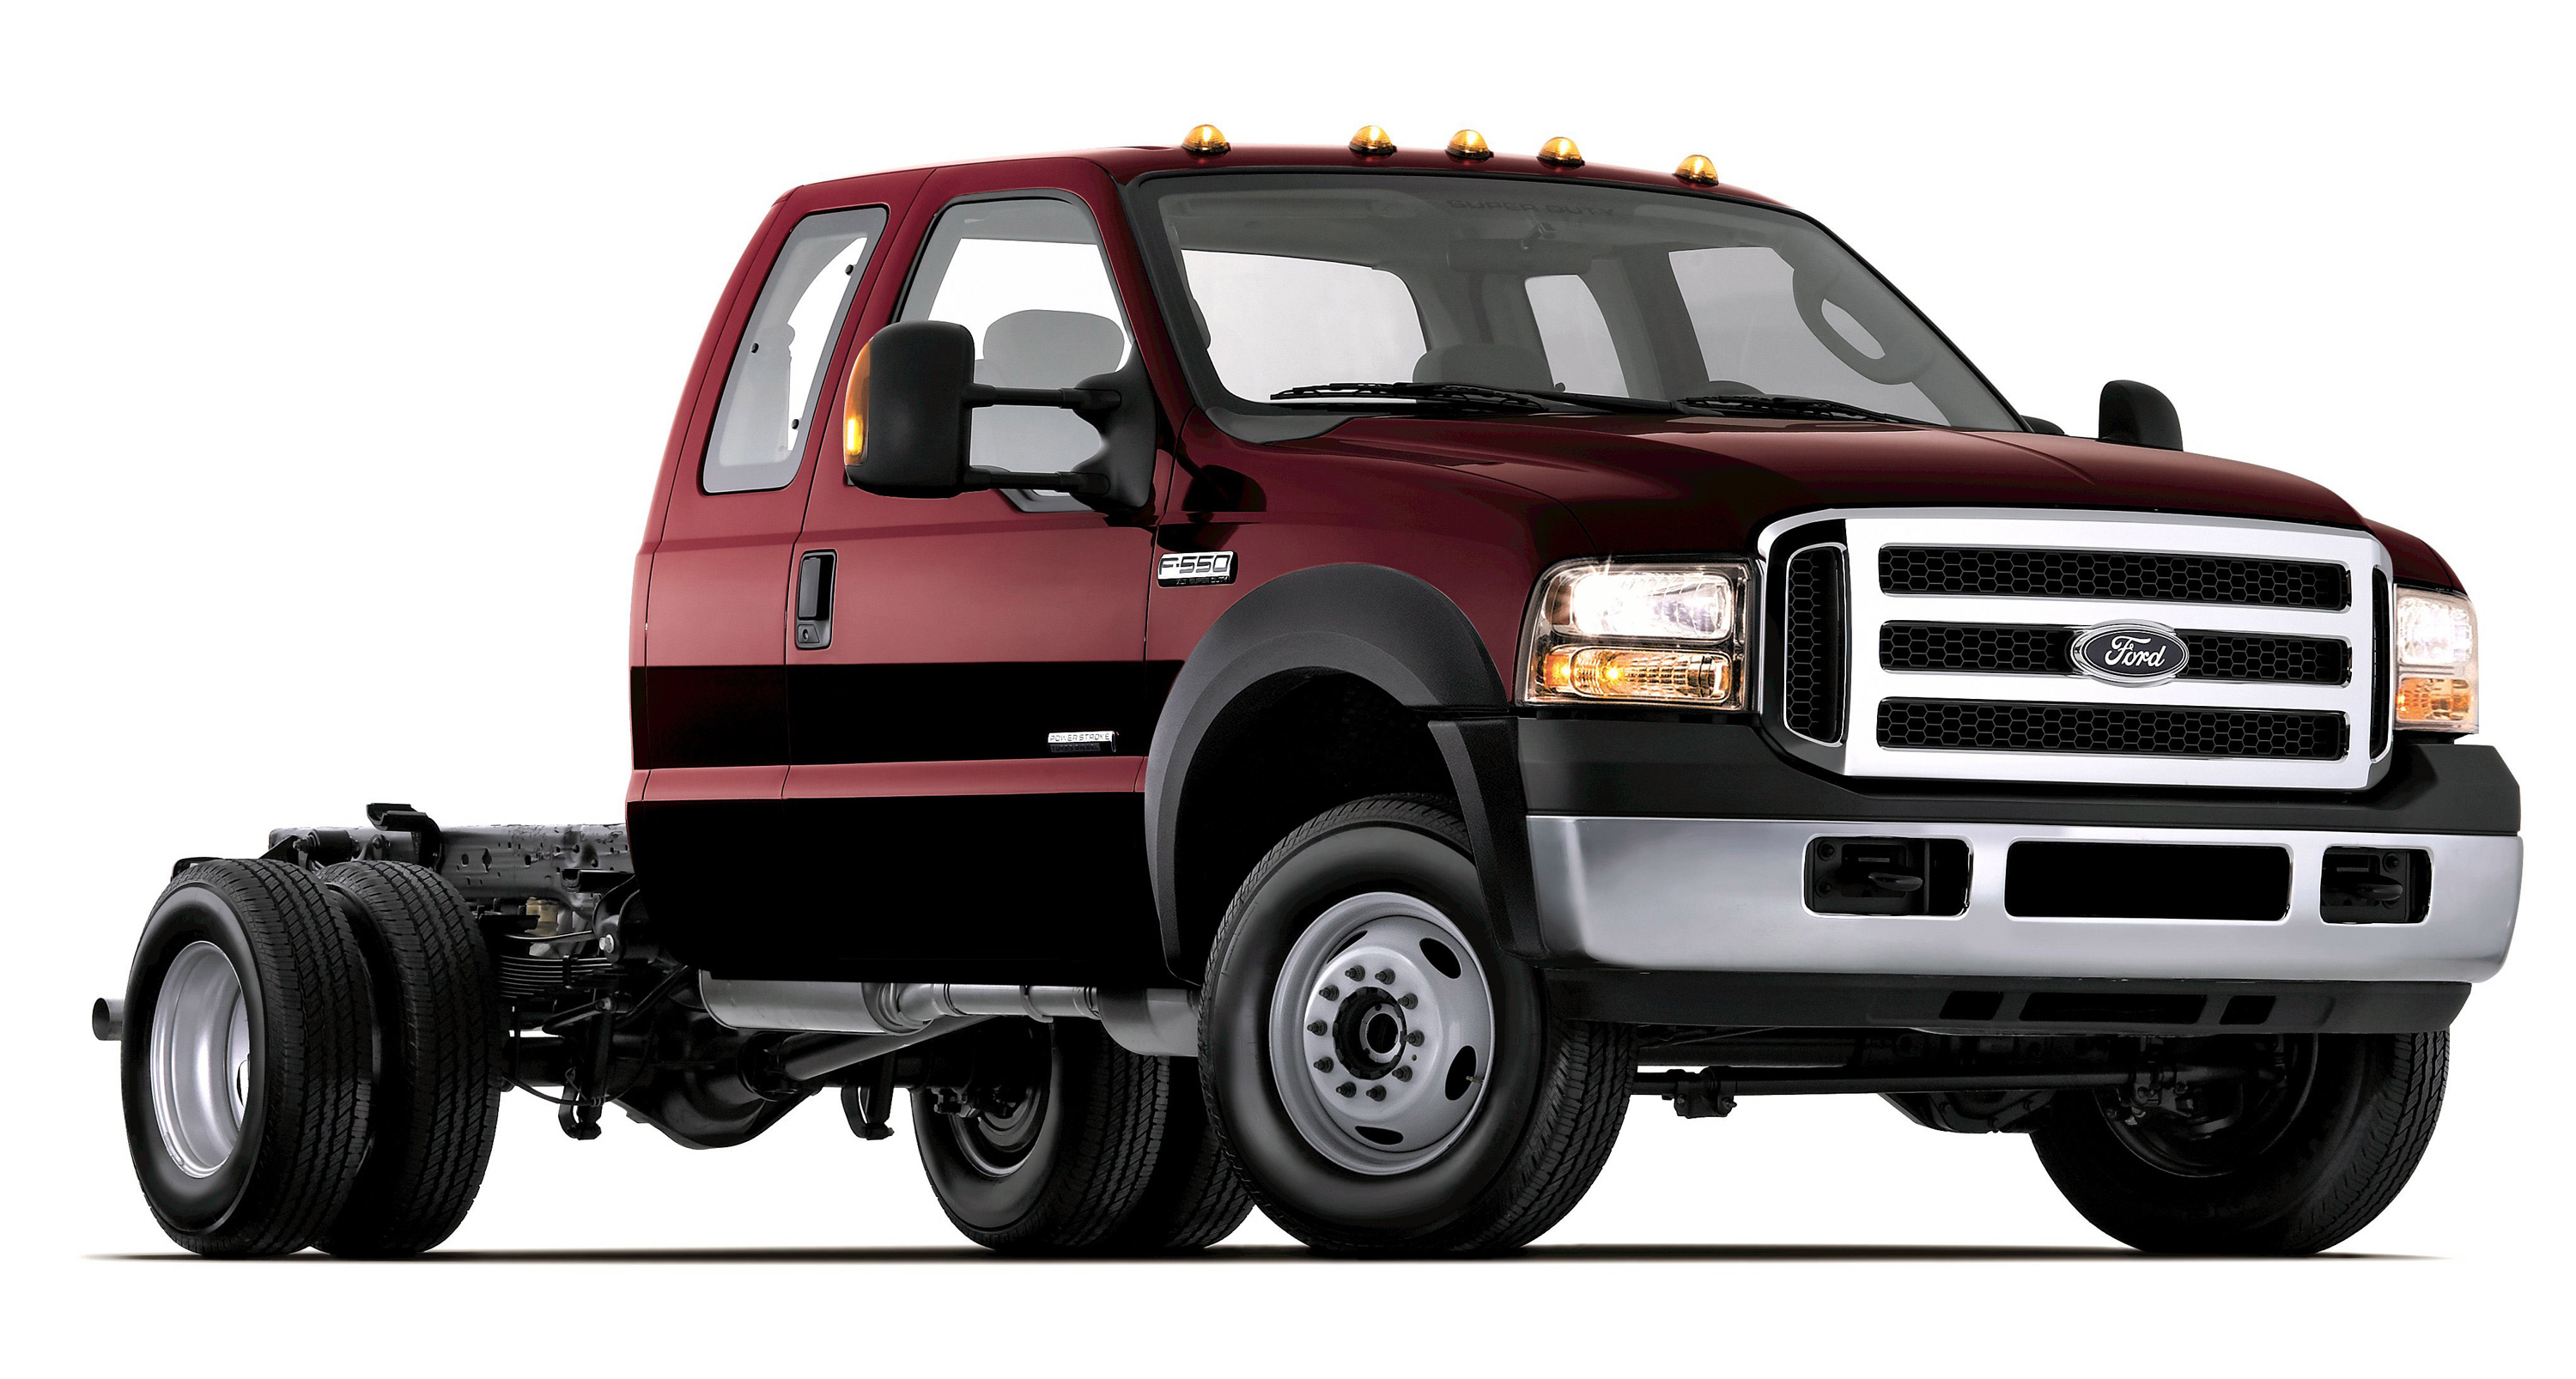 2007 Ford F-450 | Top Speed. »